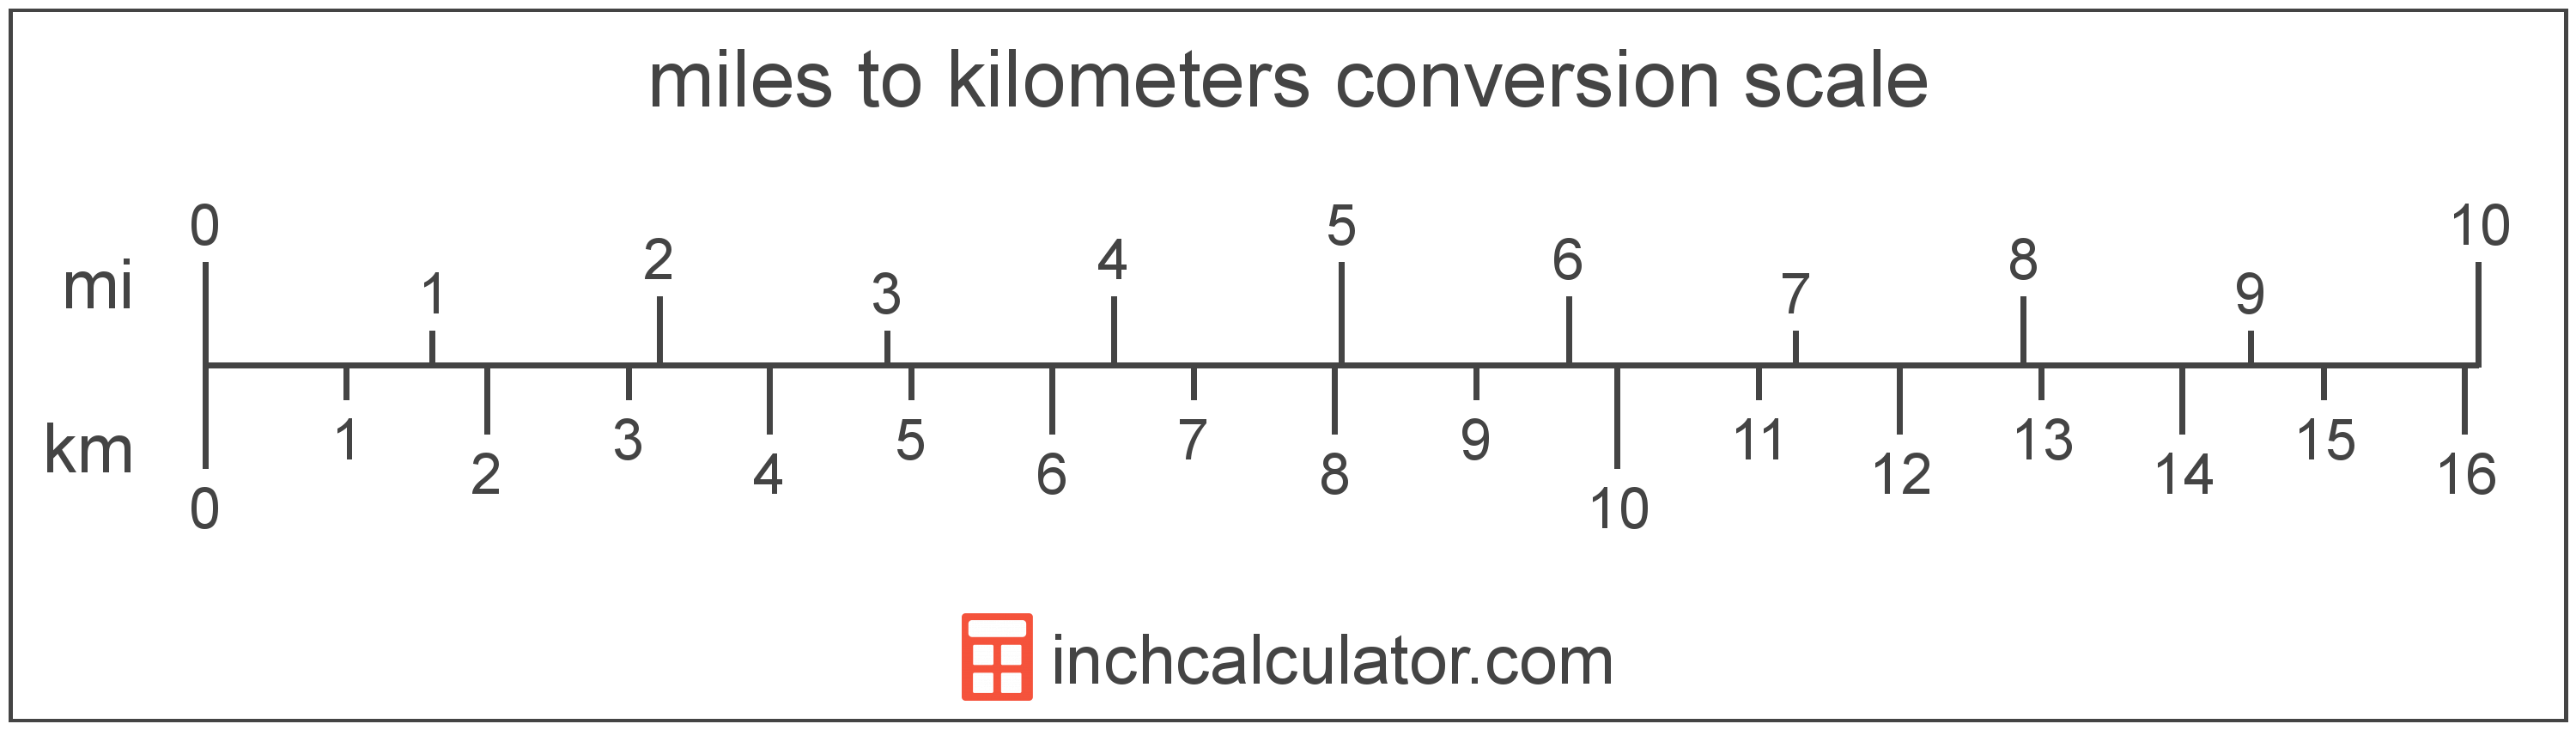 feet and kilometers are units used to measure length